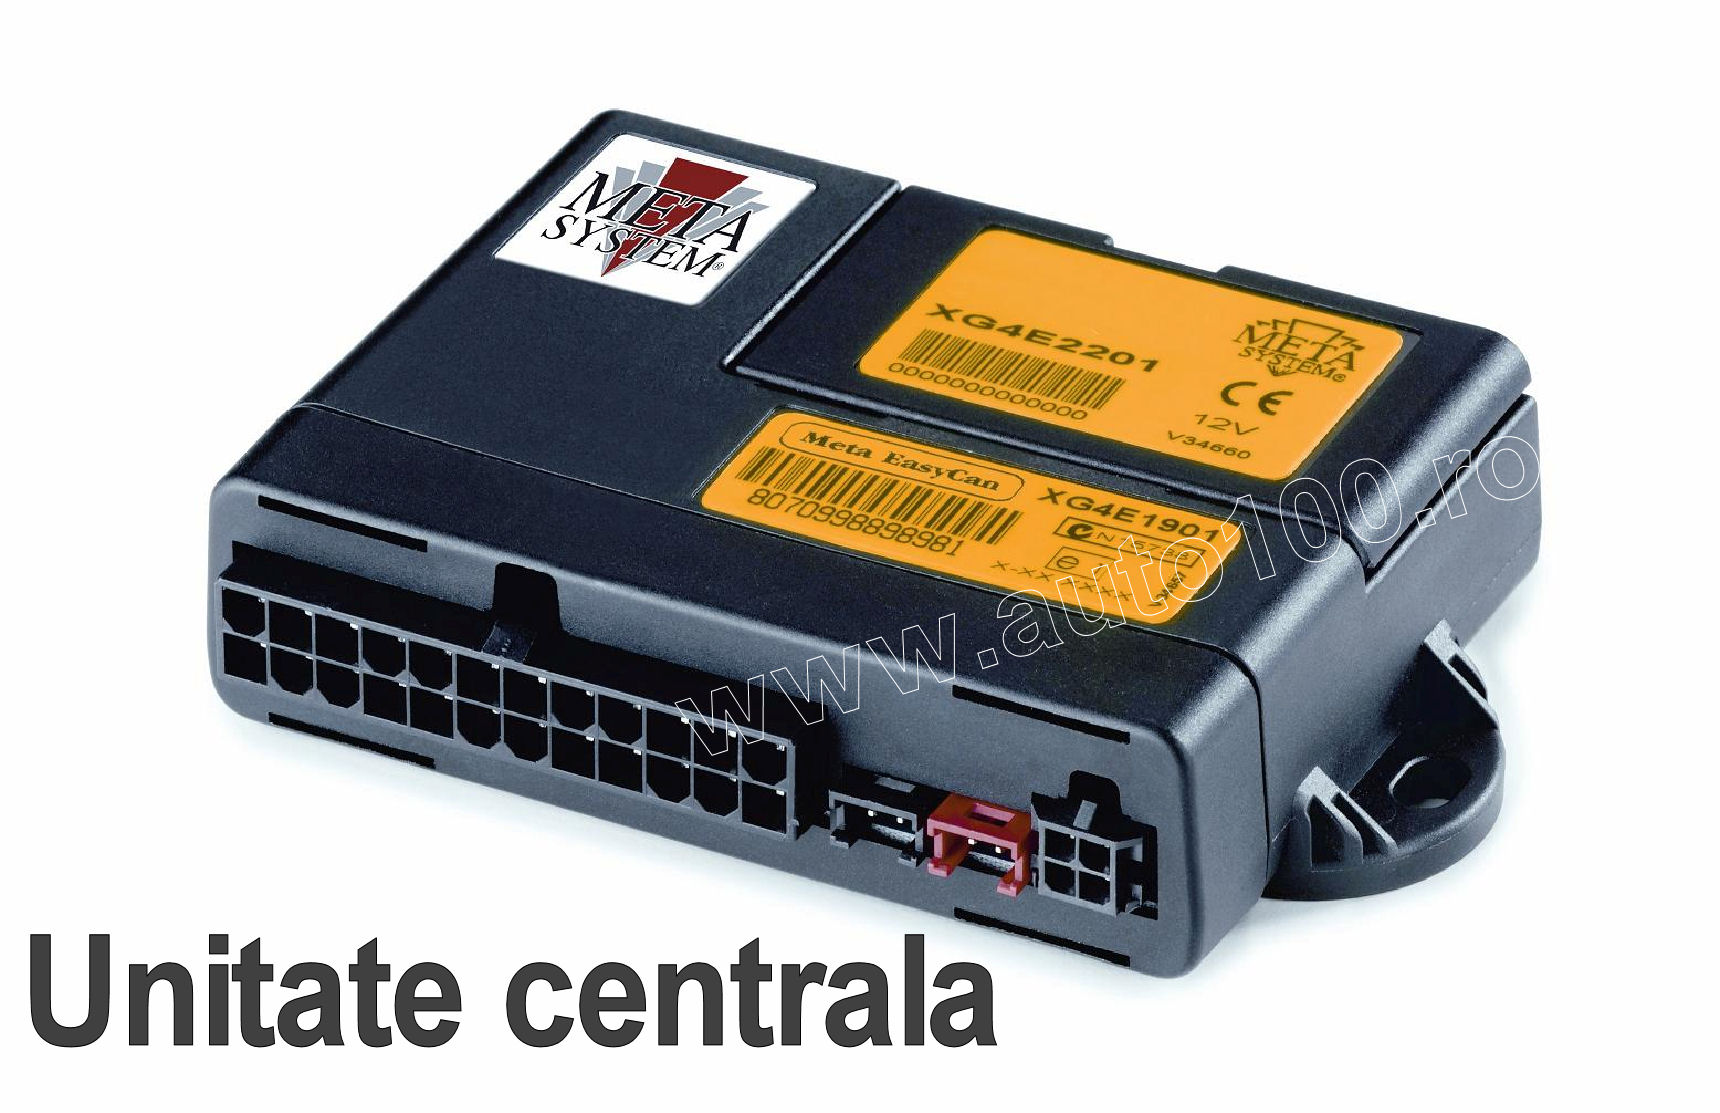 http://auto100.ro/images/products_description/alarma-auto-metasystem-easycan-unitate-centrala.jpg